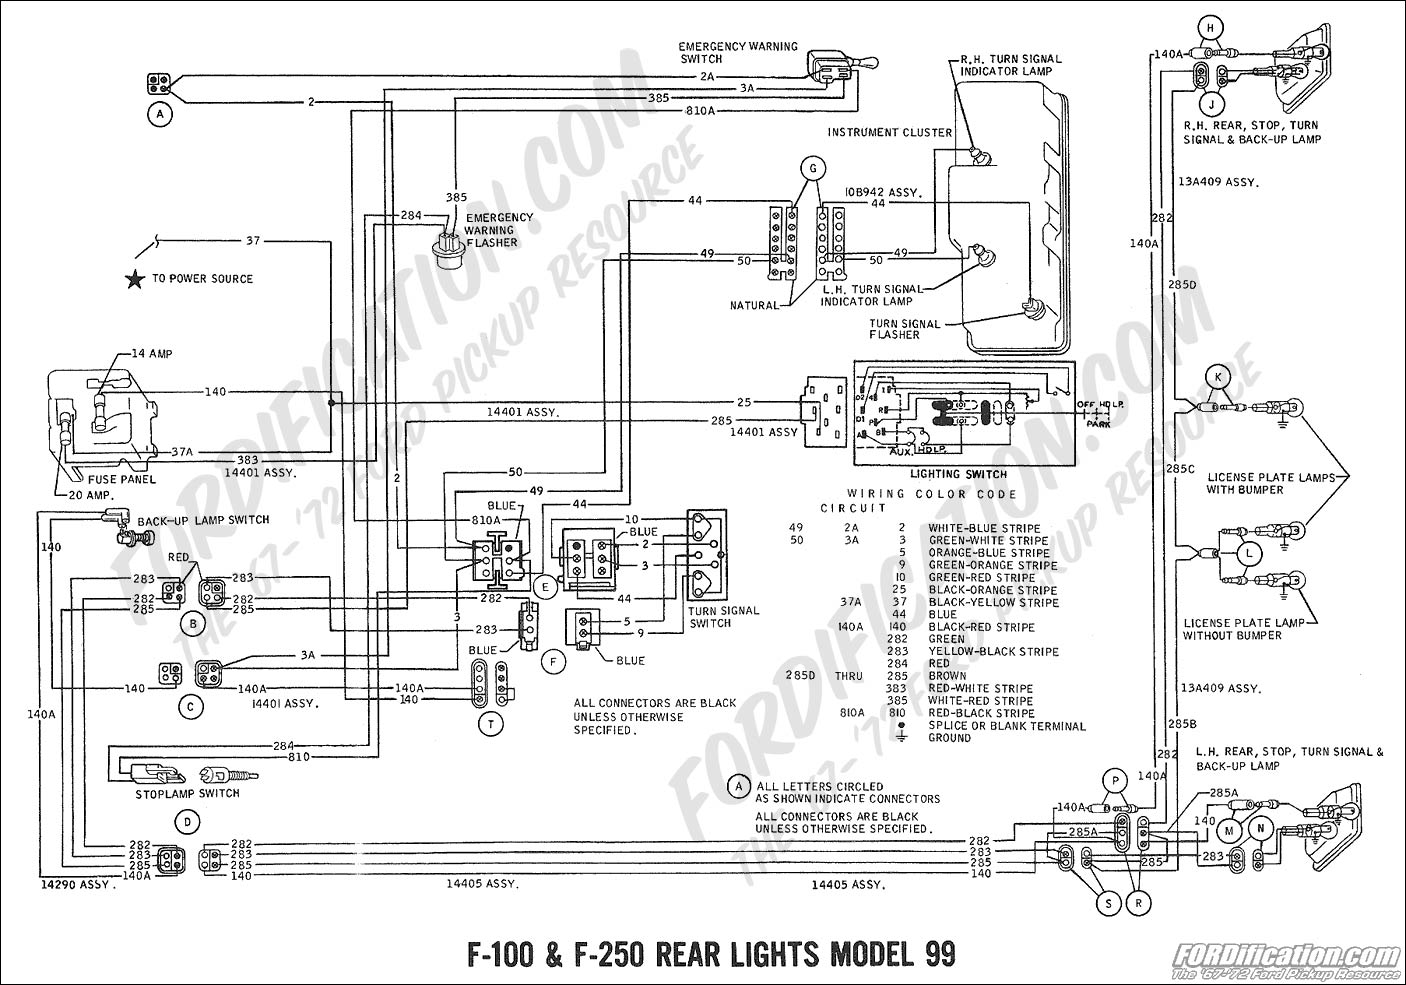 94 Paseo Fuse Box Diagram Get Free Image About Wiring Auto Related With